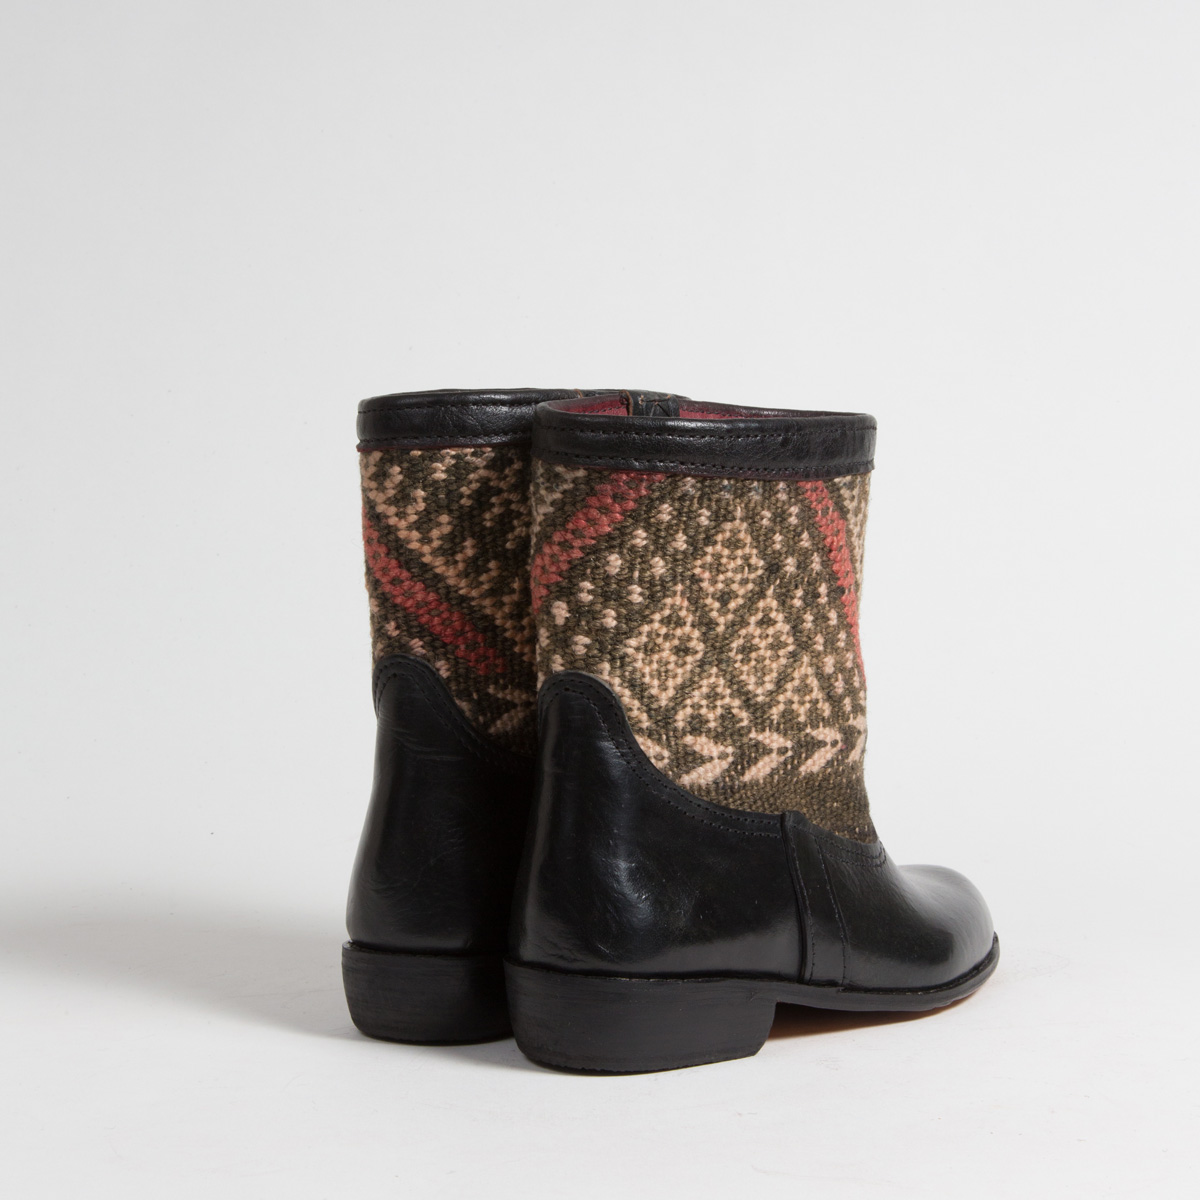 Bottines Kilim cuir mababouche artisanales (Réf. RPN12-38)